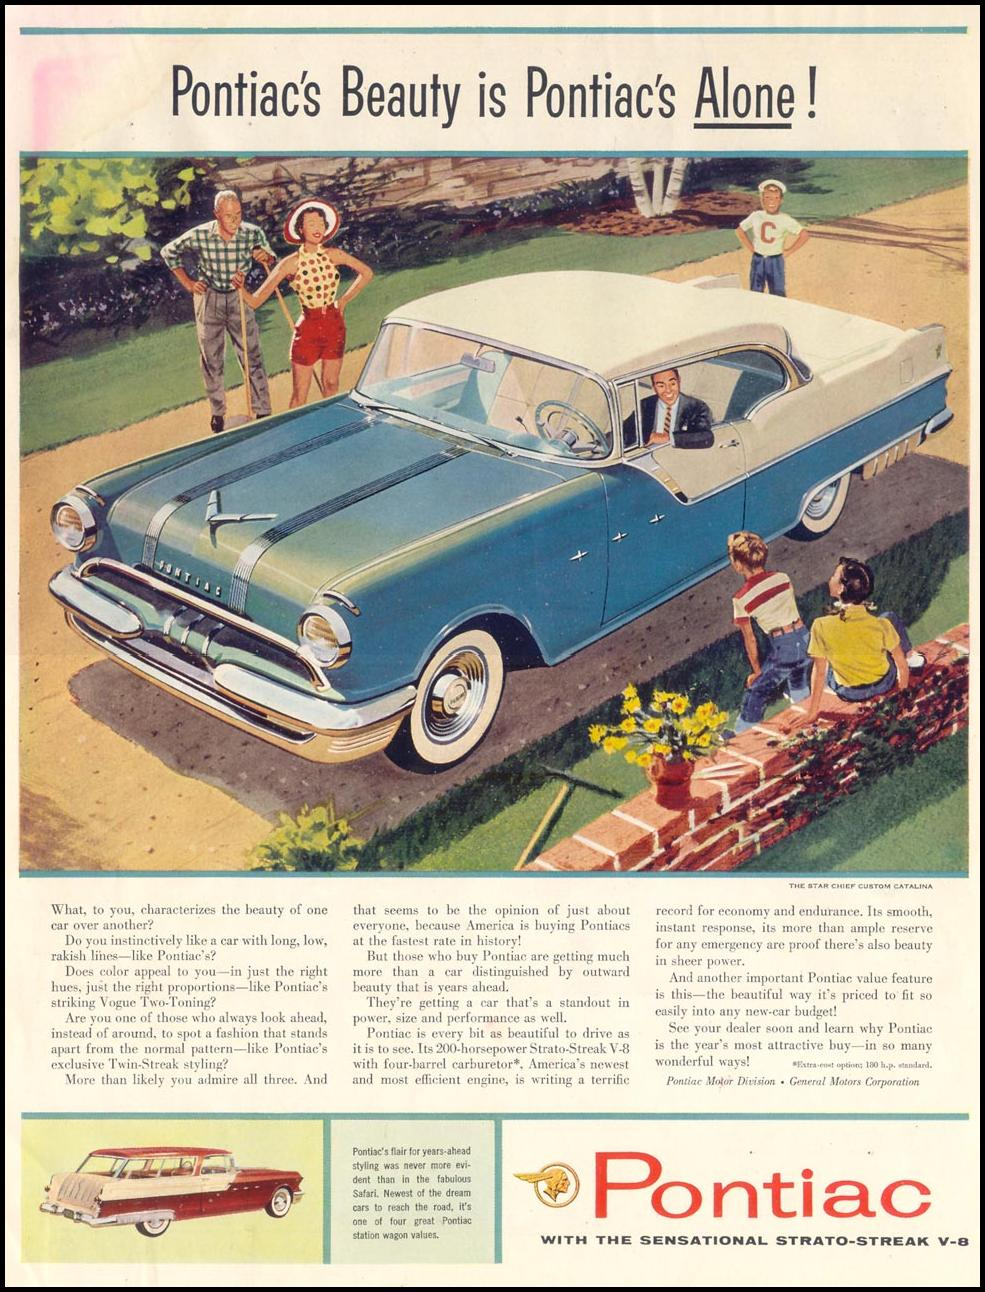 PONTIAC AUTOMOBILES SATURDAY EVENING POST 09/03/1955 INSIDE FRONT